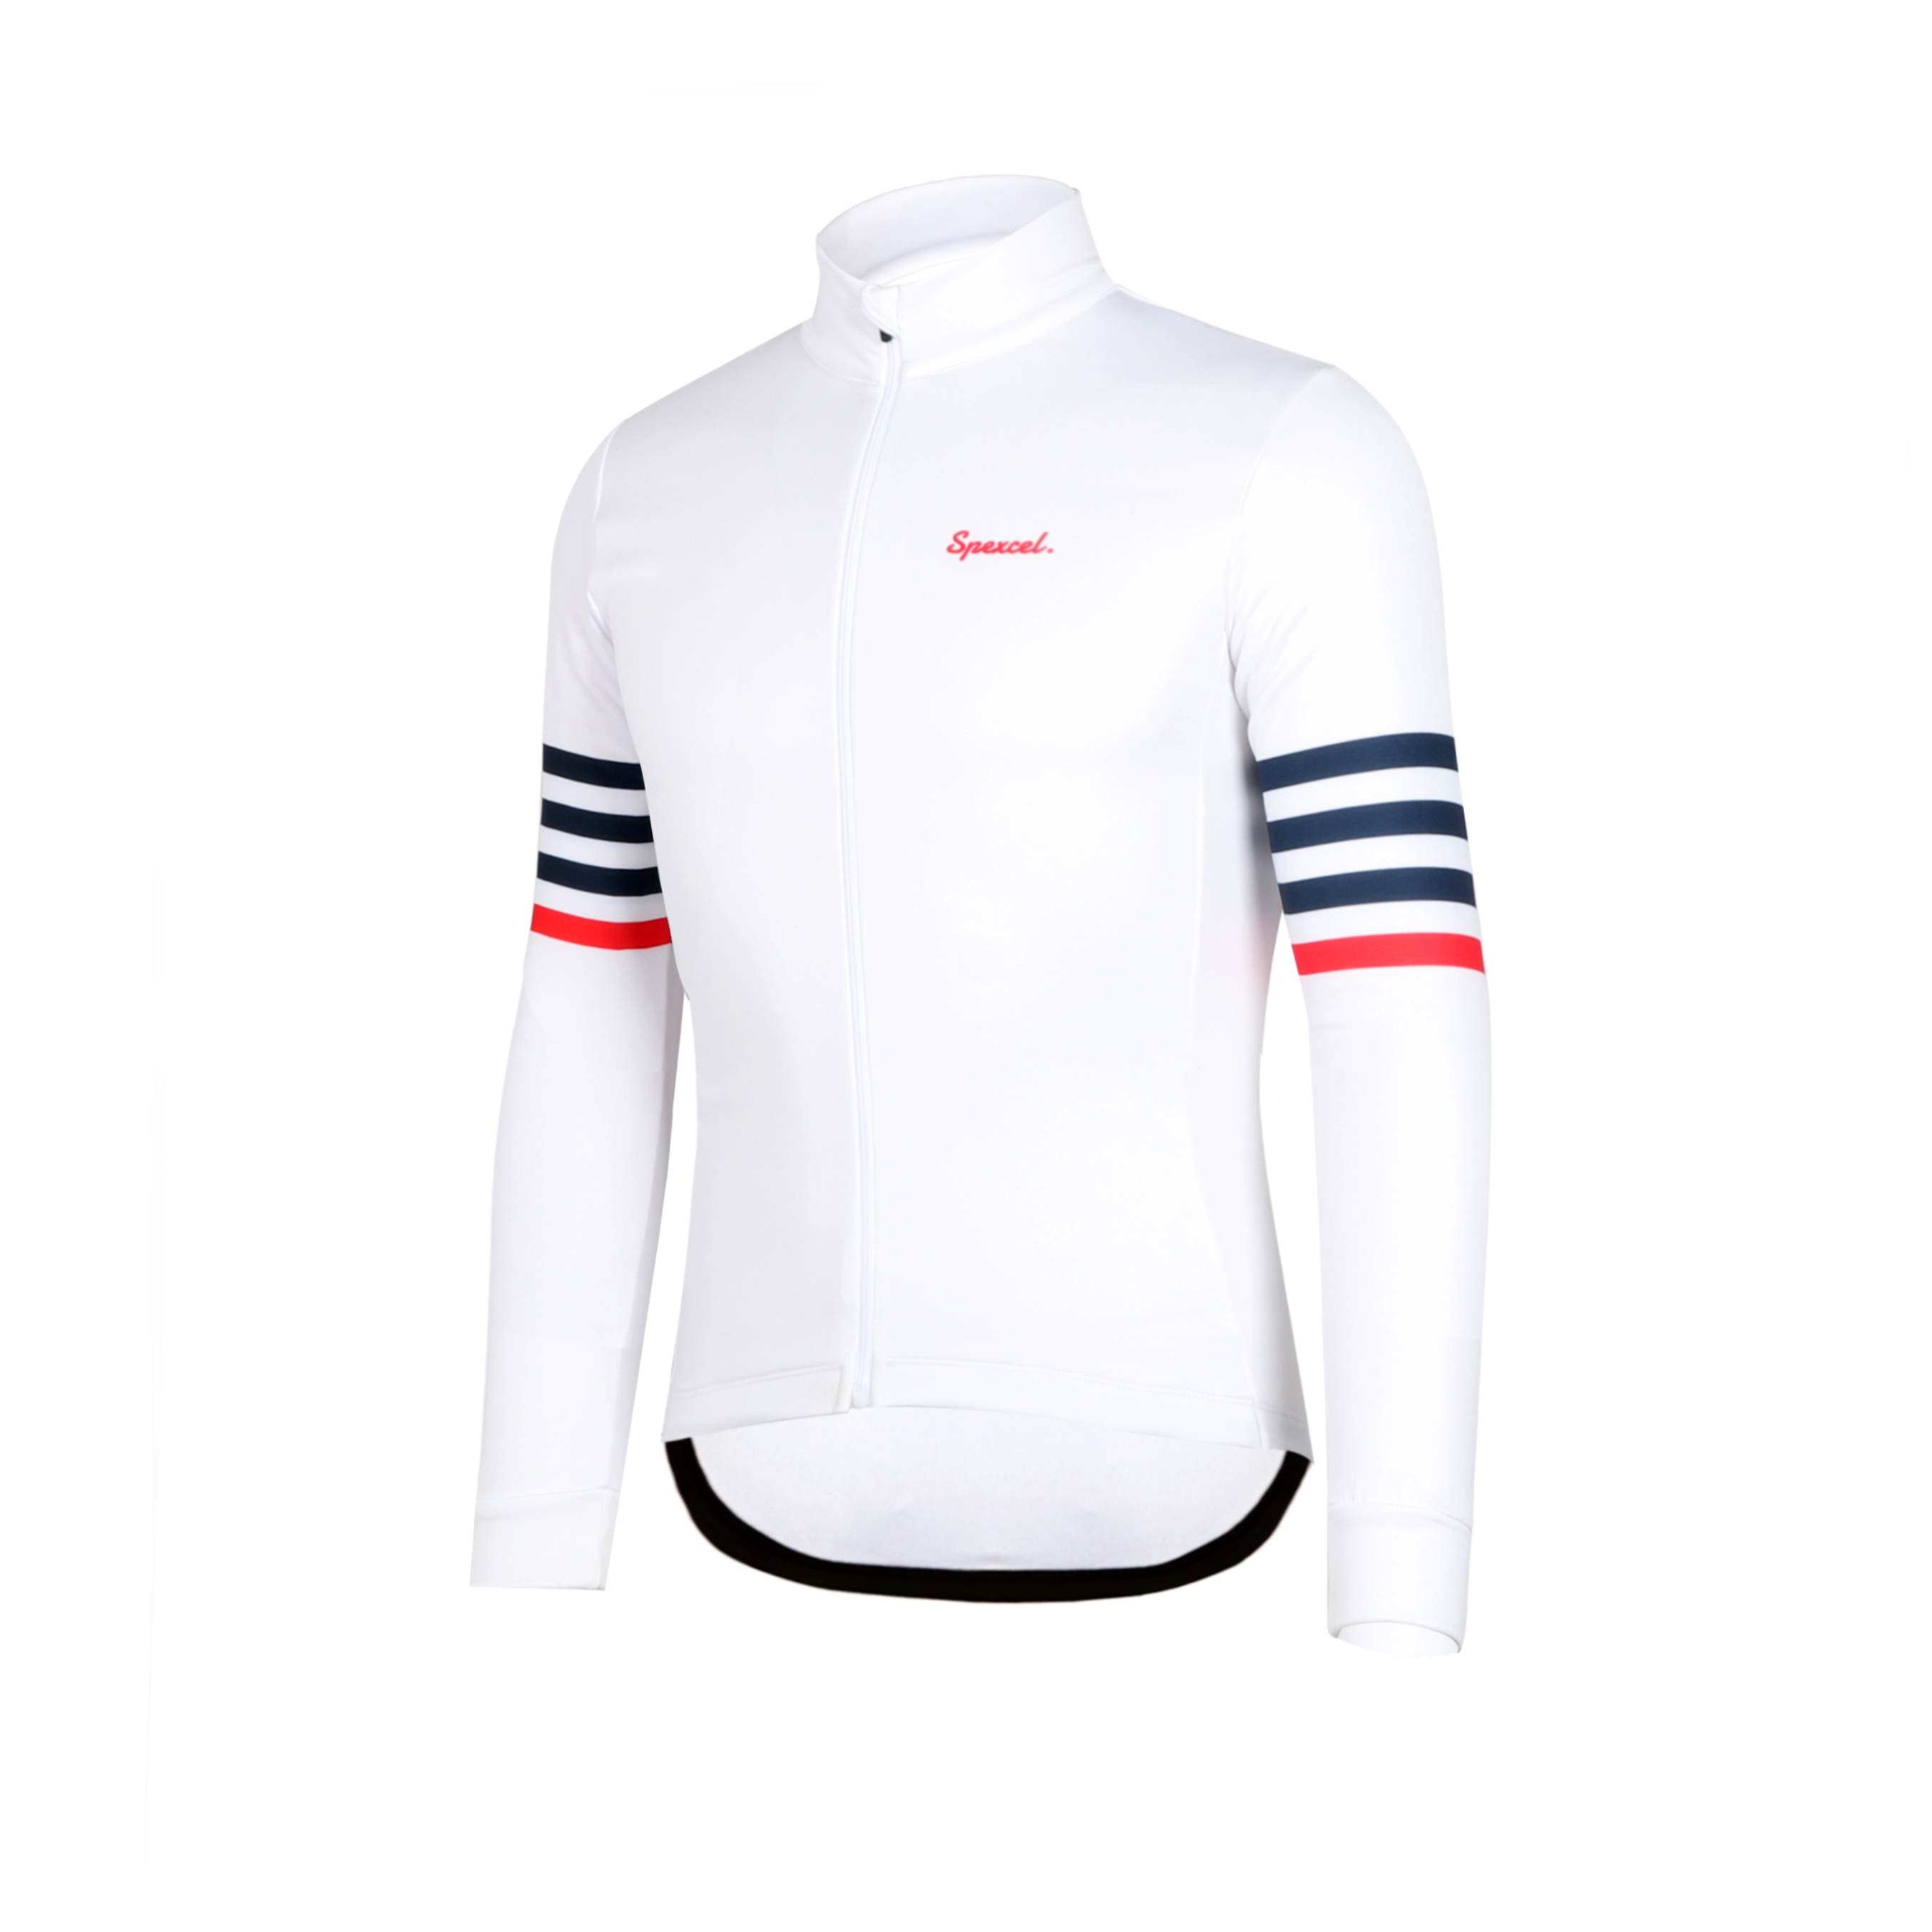 SPEXCEL 2019 NEW stripe winter thermal fleece Cycling Jersey Road bicycle clothes Spain Ropa Ciclismo bike shirt|Cycling Jerseys| |  - title=